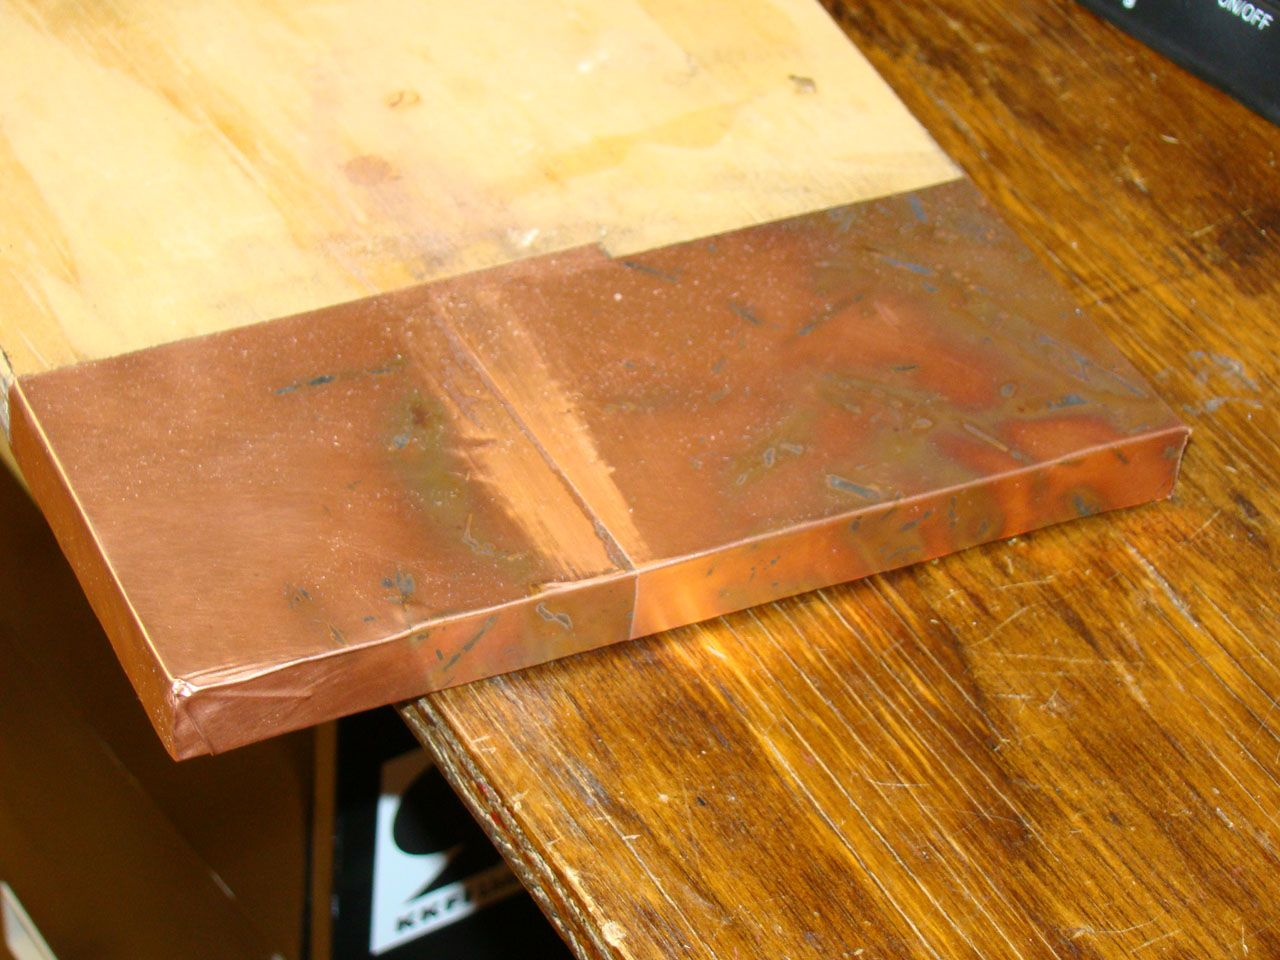 Copper Laminate Countertops Copper Countertop Want To Make Diy Possibilities